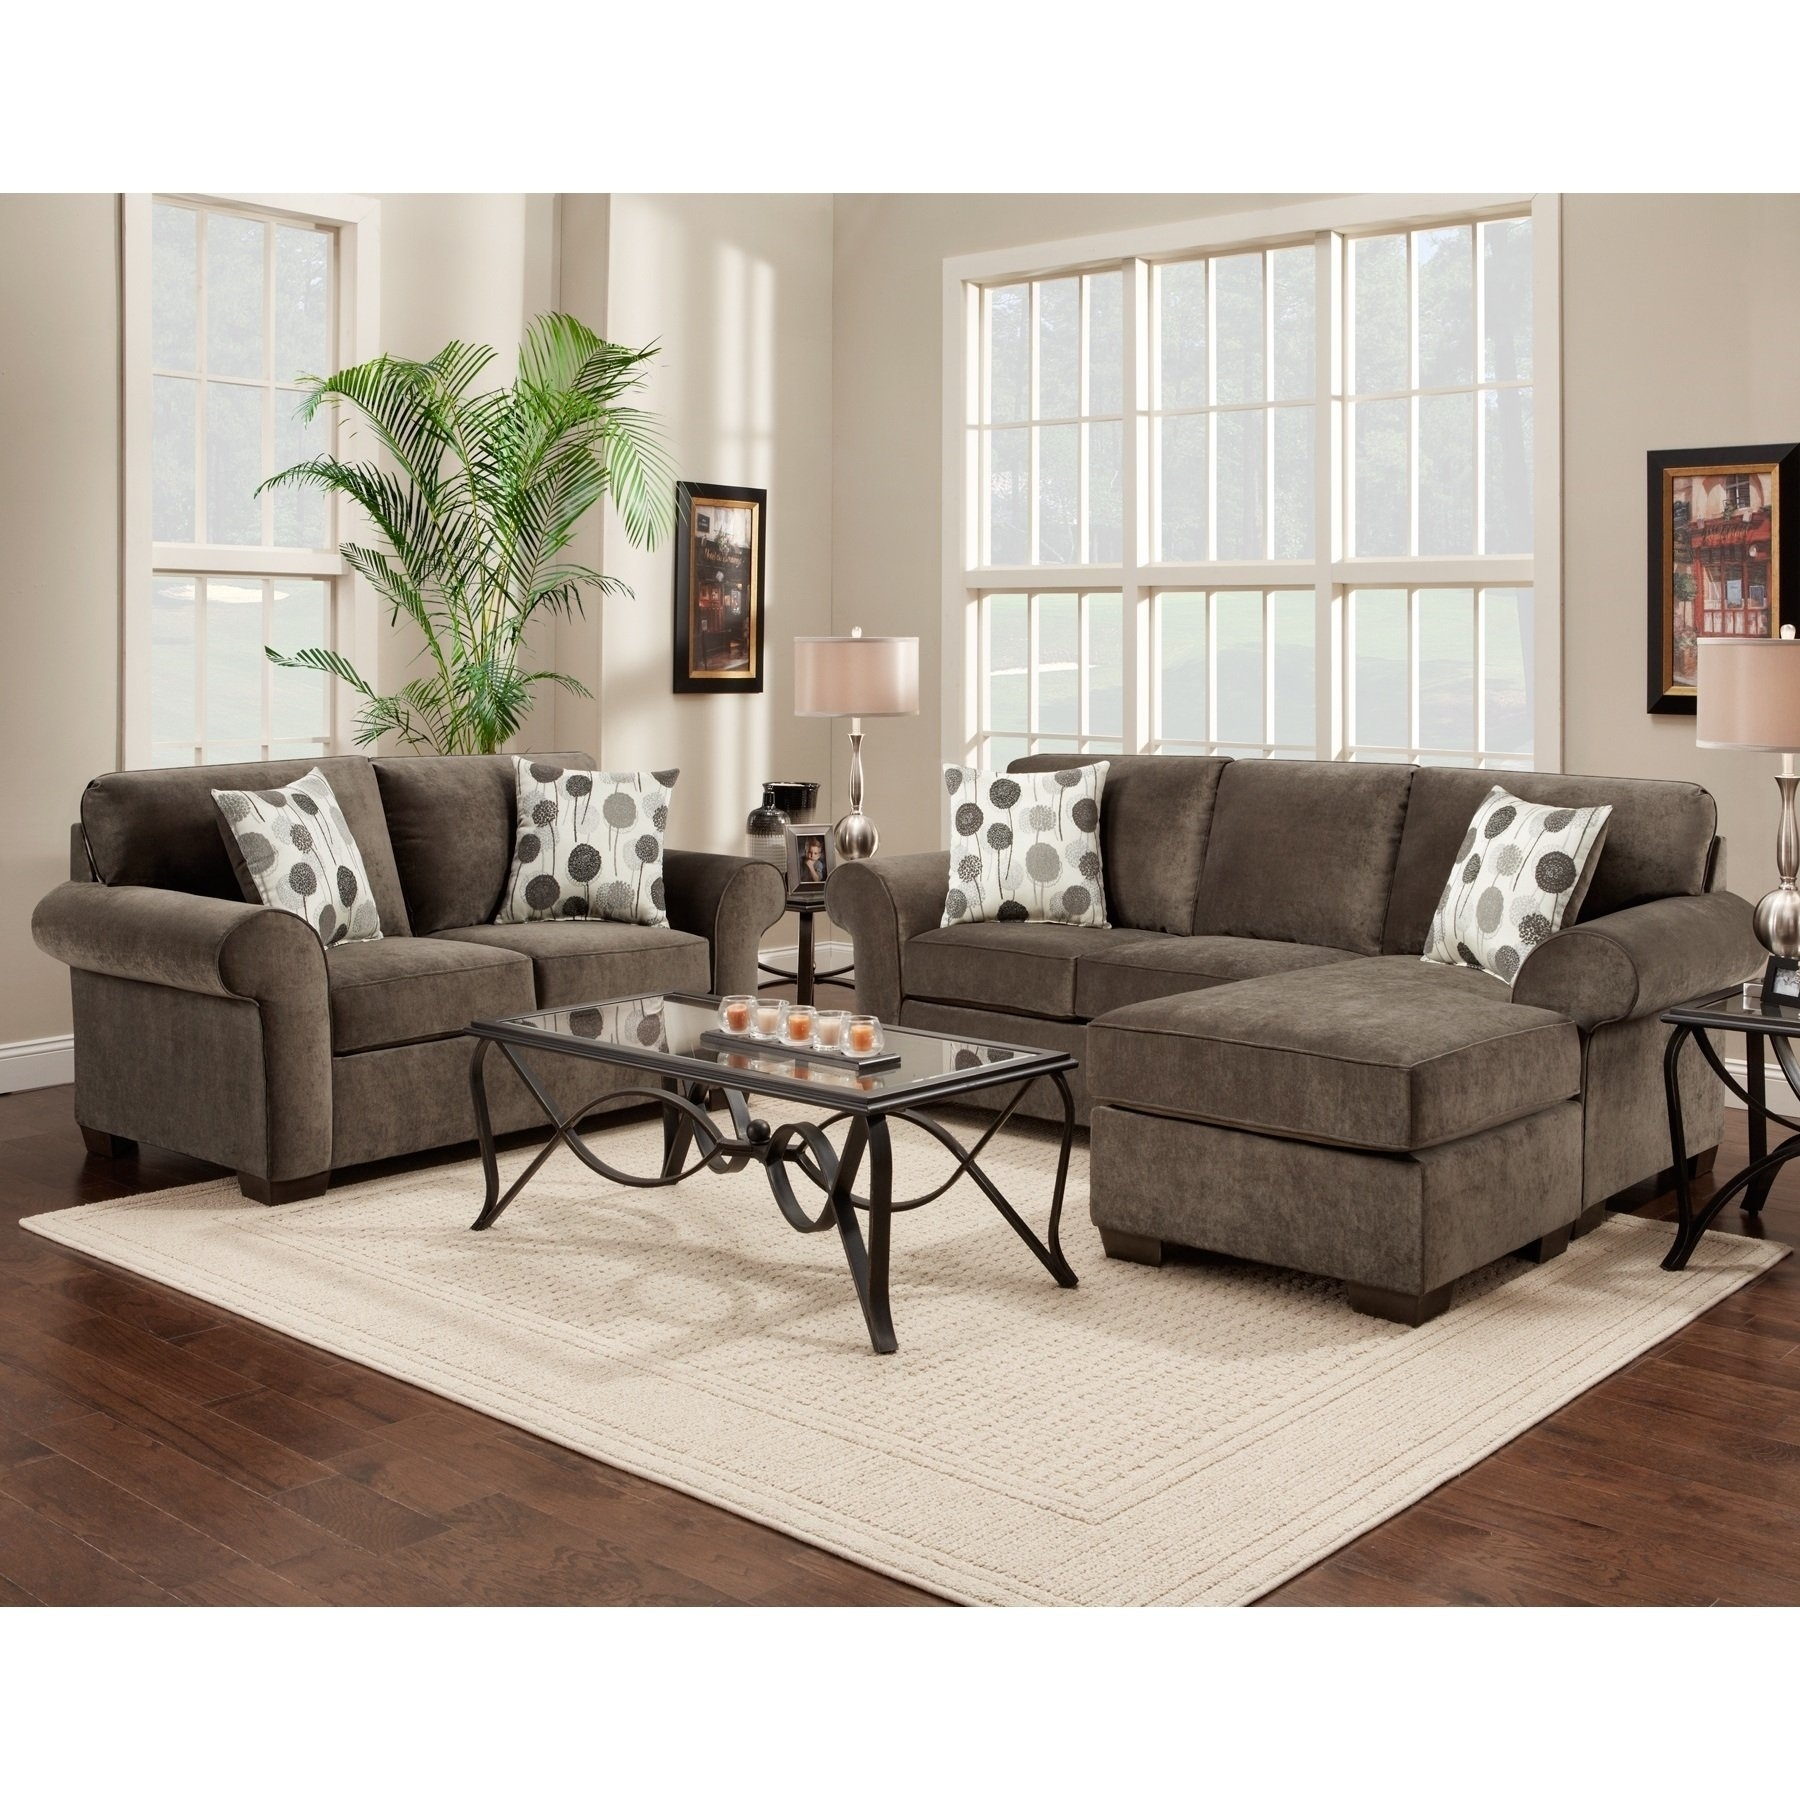 Loveseat Sectional | Whitecraftwoodard Mona Wicker Right Arm For Taron 3 Piece Power Reclining Sectionals With Left Facing Console Loveseat (Image 10 of 25)